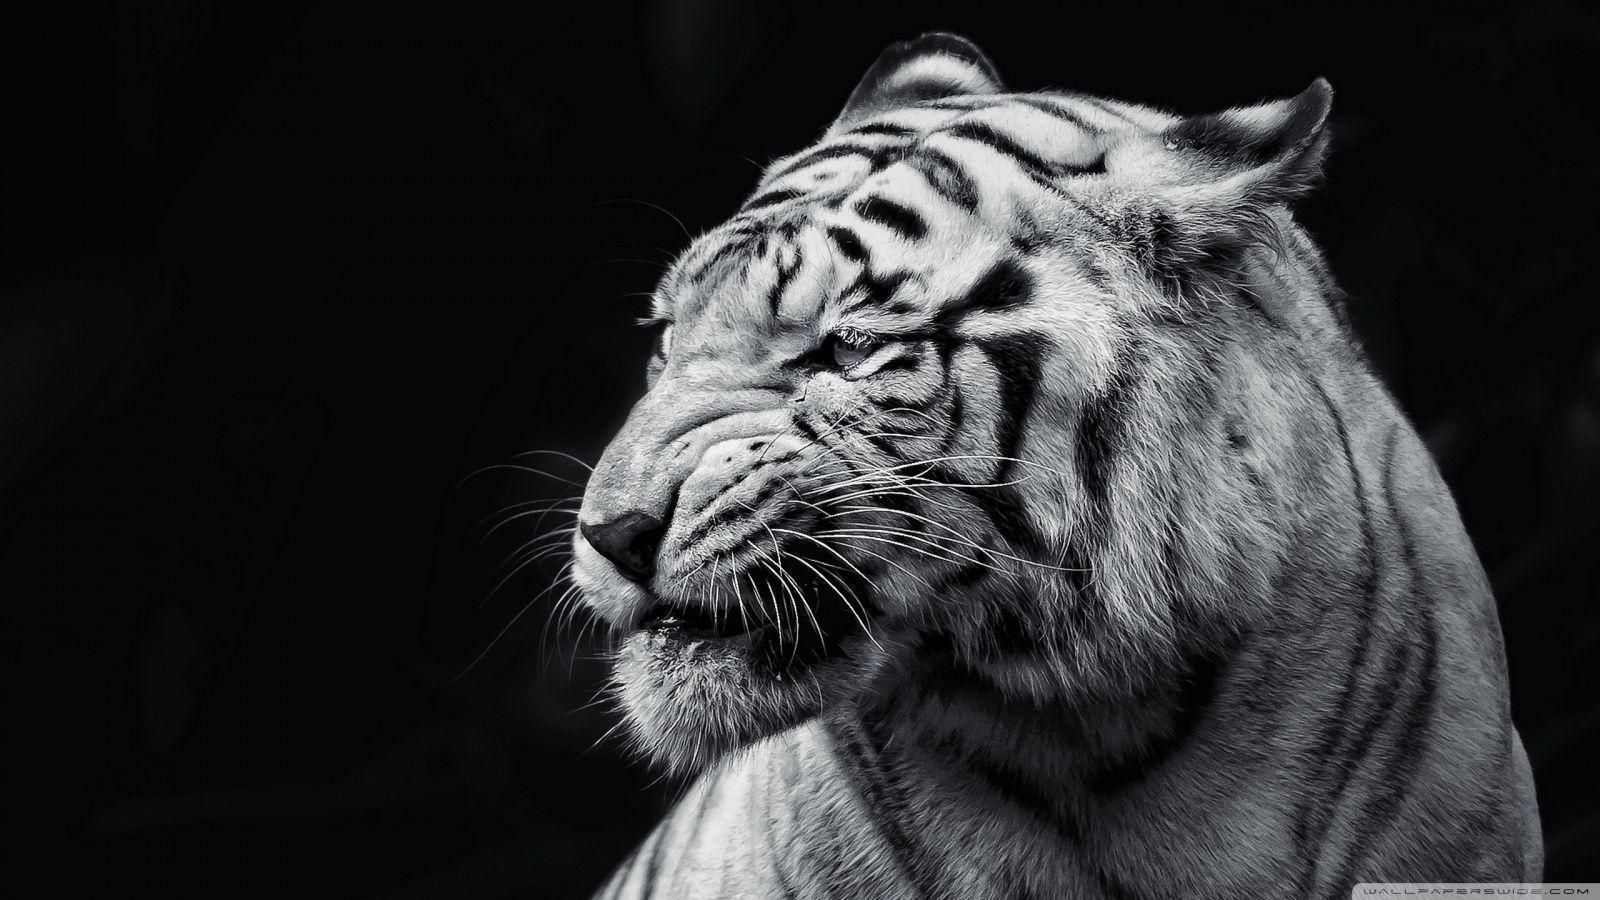 Download Gambar Wallpaper Hd Black Tiger Terbaru 2020 Hewan Harimau Putih Harimau